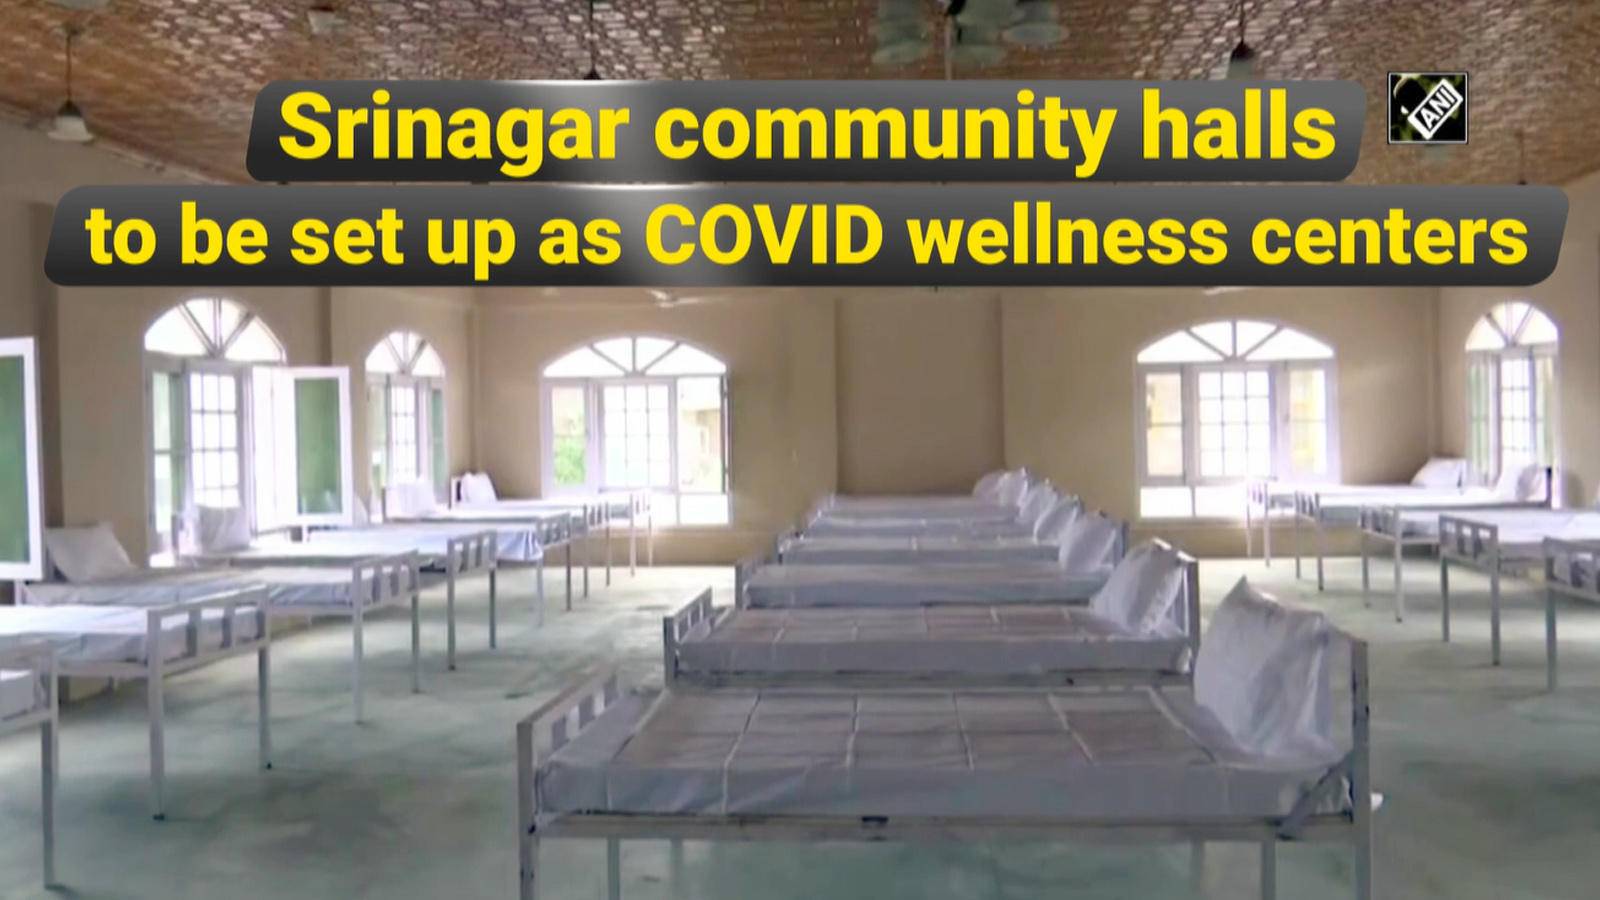 srinagar-community-halls-to-be-set-up-as-covid-wellness-centers